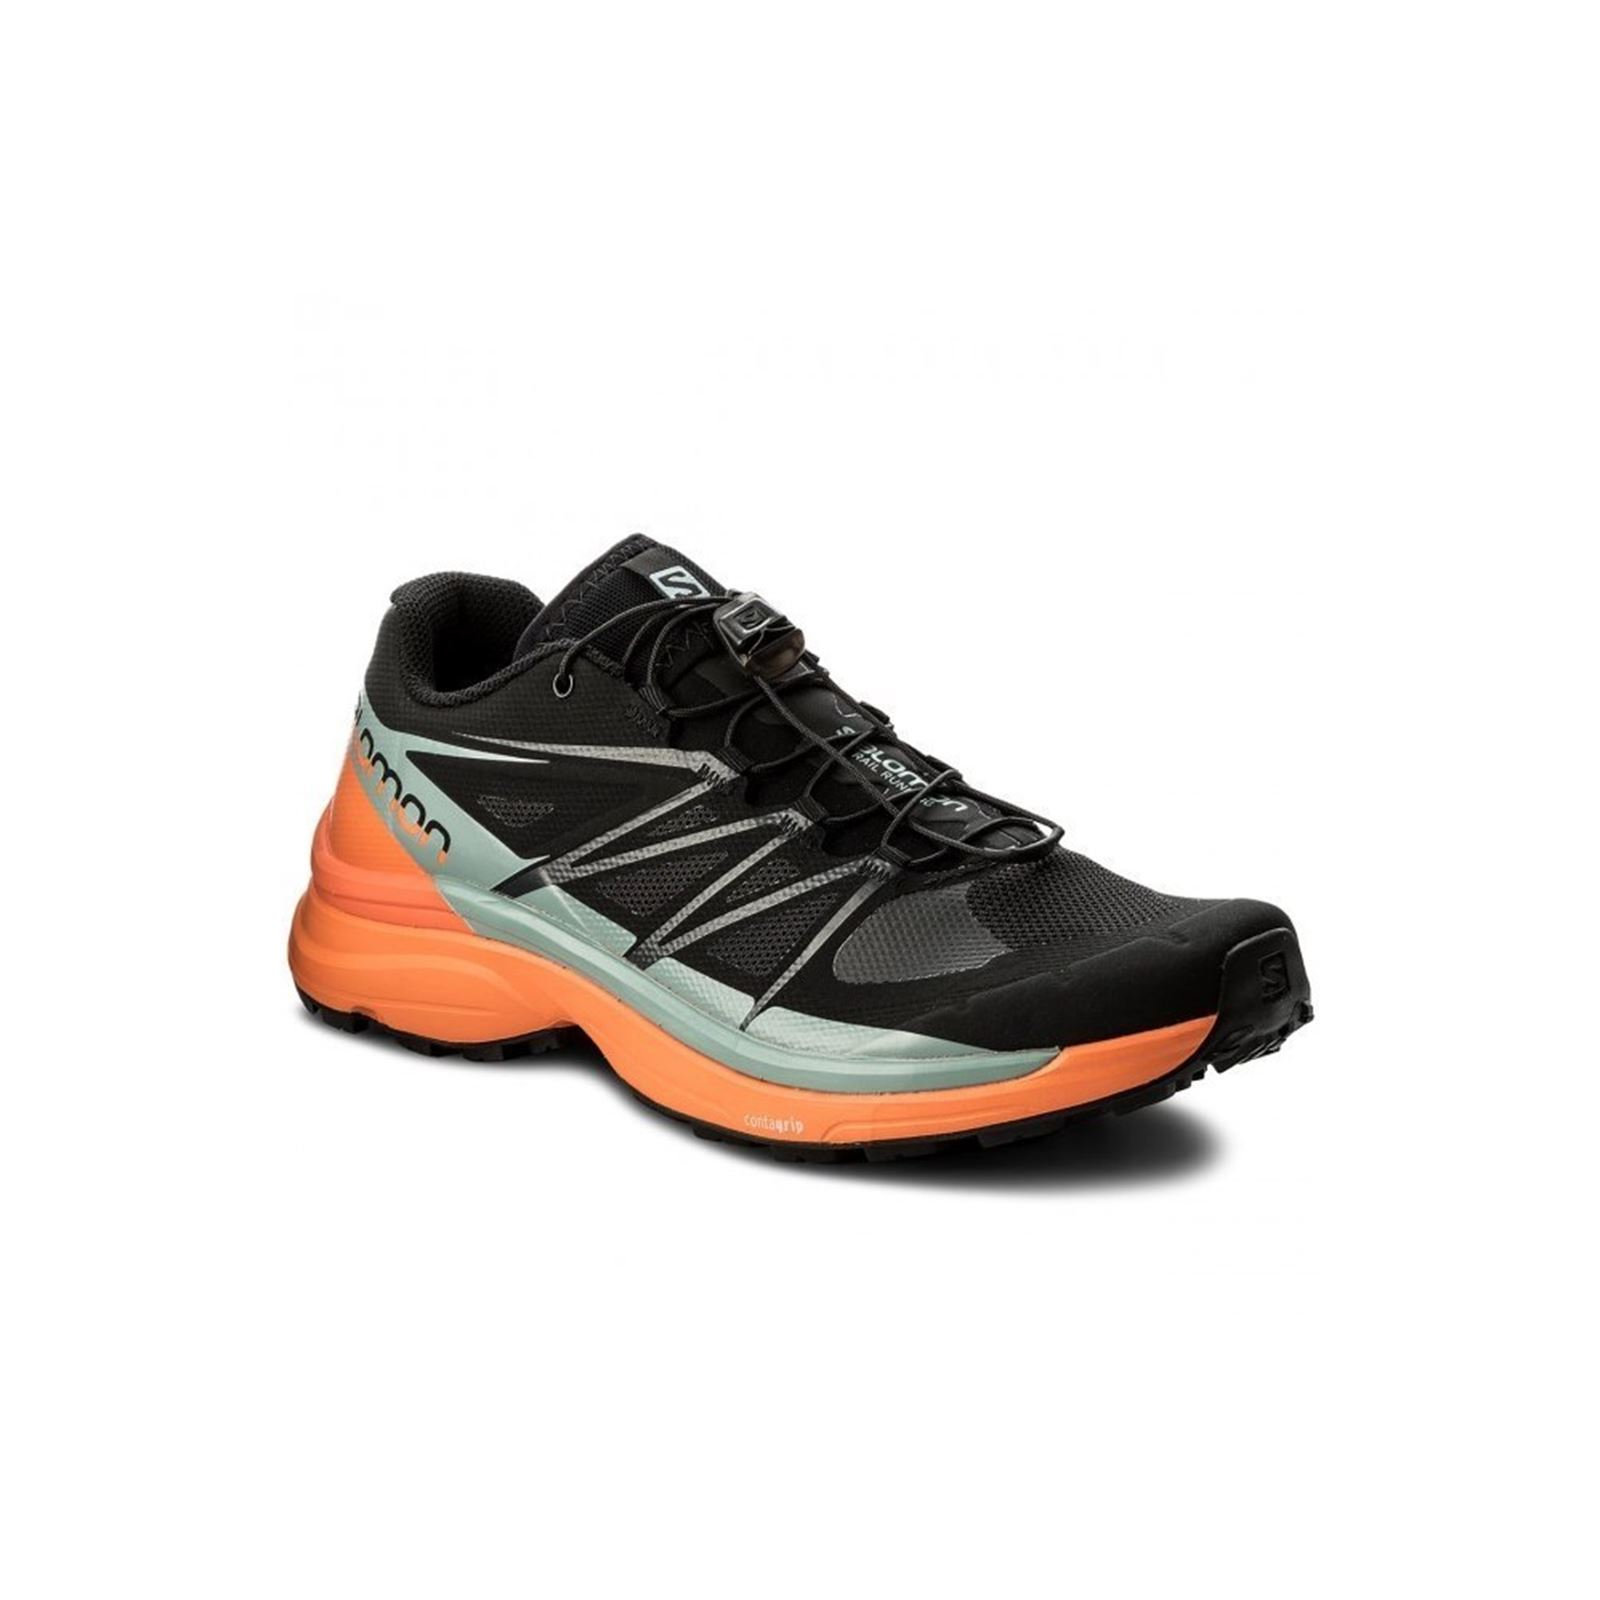 Pro Chaussures Running Wings 3 De Multicolore vNnm0y8wO